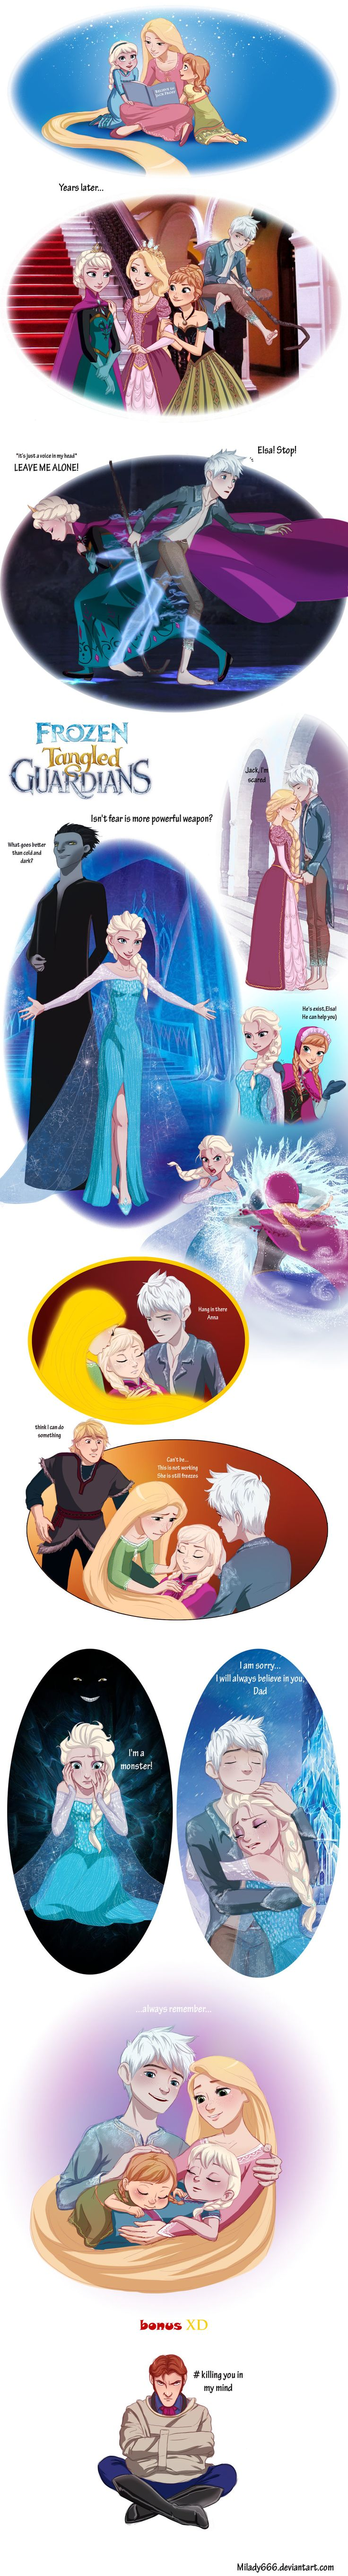 Frozen Tangled Guardians_alternative story by Milady666.deviantart.com on @deviantART